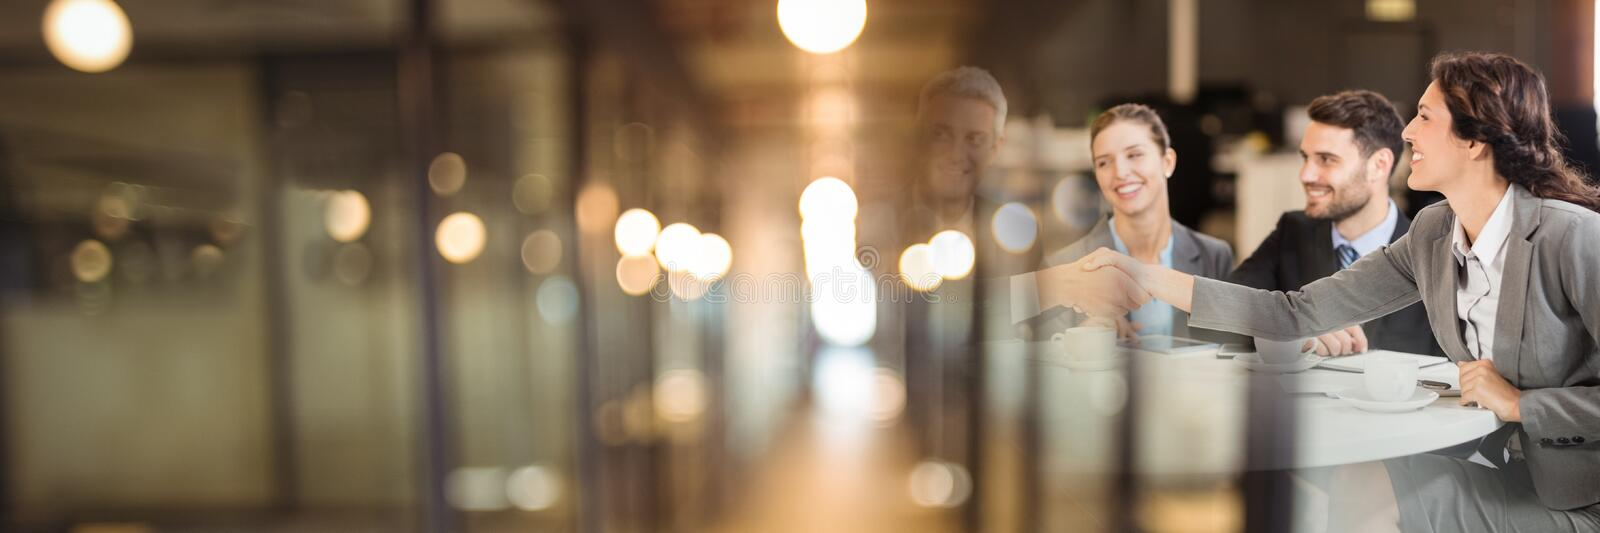 Business people having a meeting with blurry lights transition effect royalty free stock image